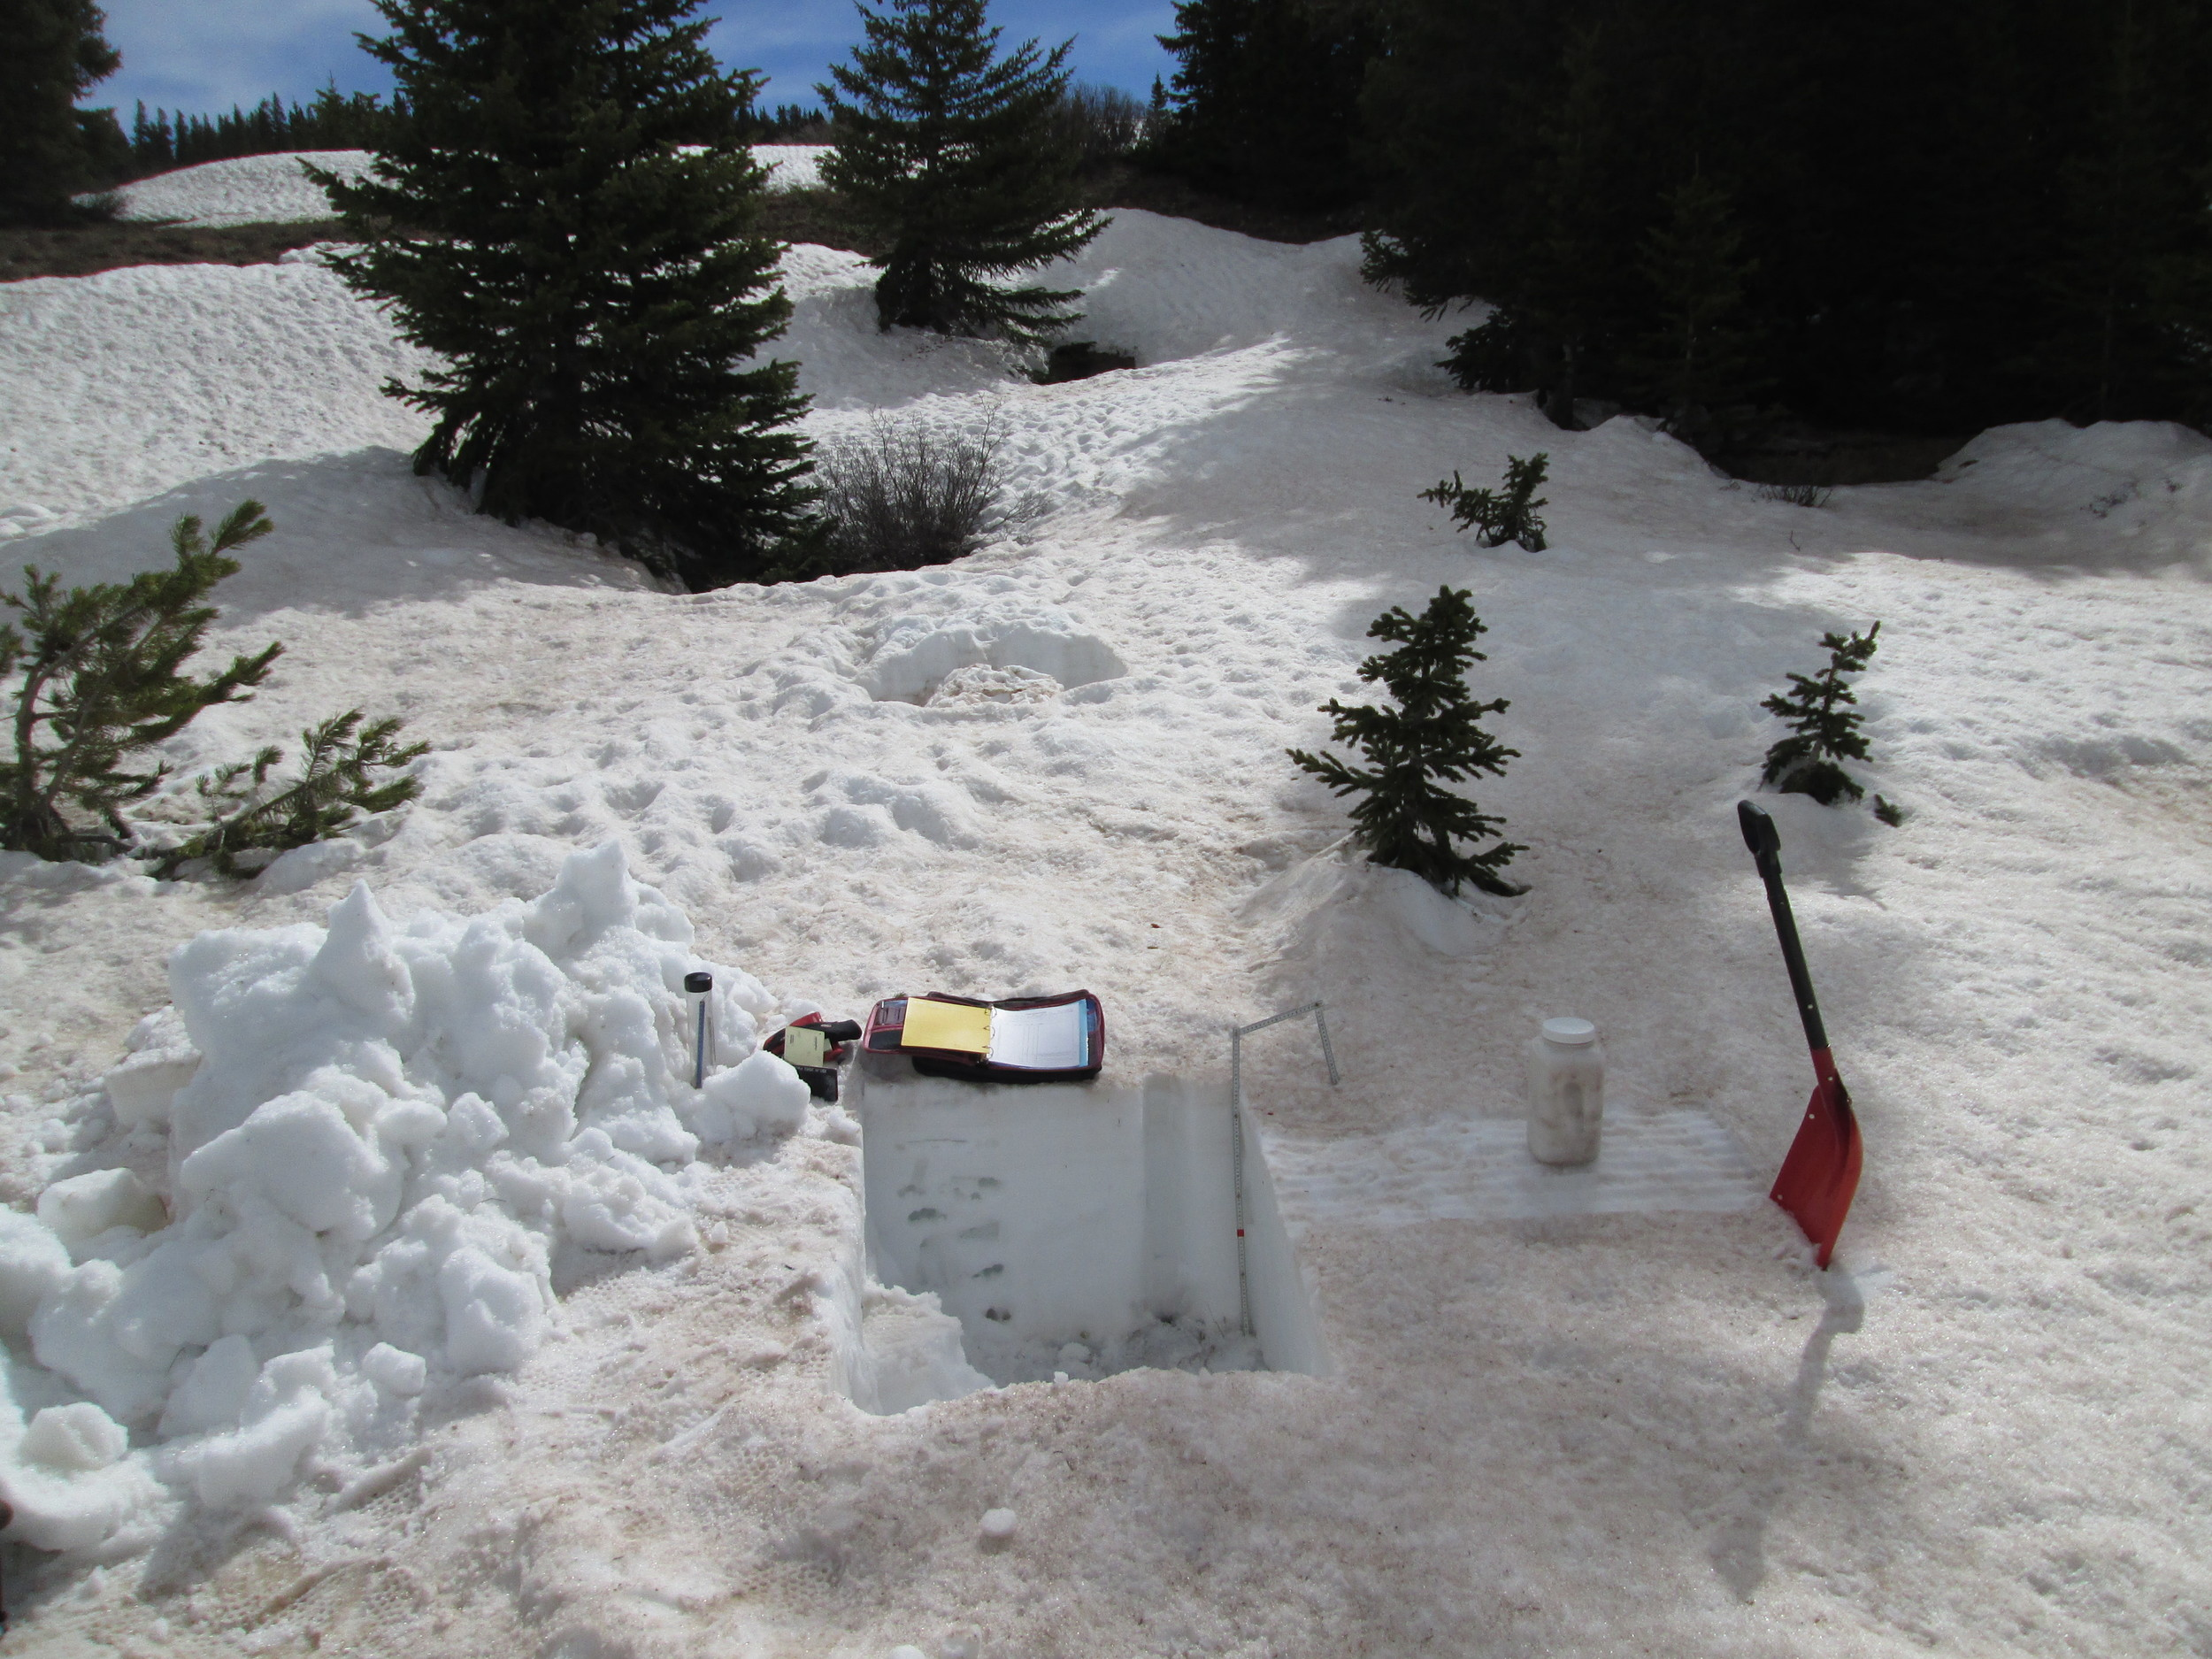 """Some 27"""" of snowpack remained at the CODOS Hoosier Pass snow profile site; the re-filled hole from our previous, April 24 snow pit is seen just a few yards to the east. An 'all layers merged' dust sample was collected by scraping the surface. As was typical at all sites, dirty melt water infiltrating from the surface had stained snow underneath the sampled snow, and most of the winter's wind-blown vegetation debris had also accumulated at the snow surface. Still, the vast majority of dust material was captured and will enable analysis of the merged dust properties."""